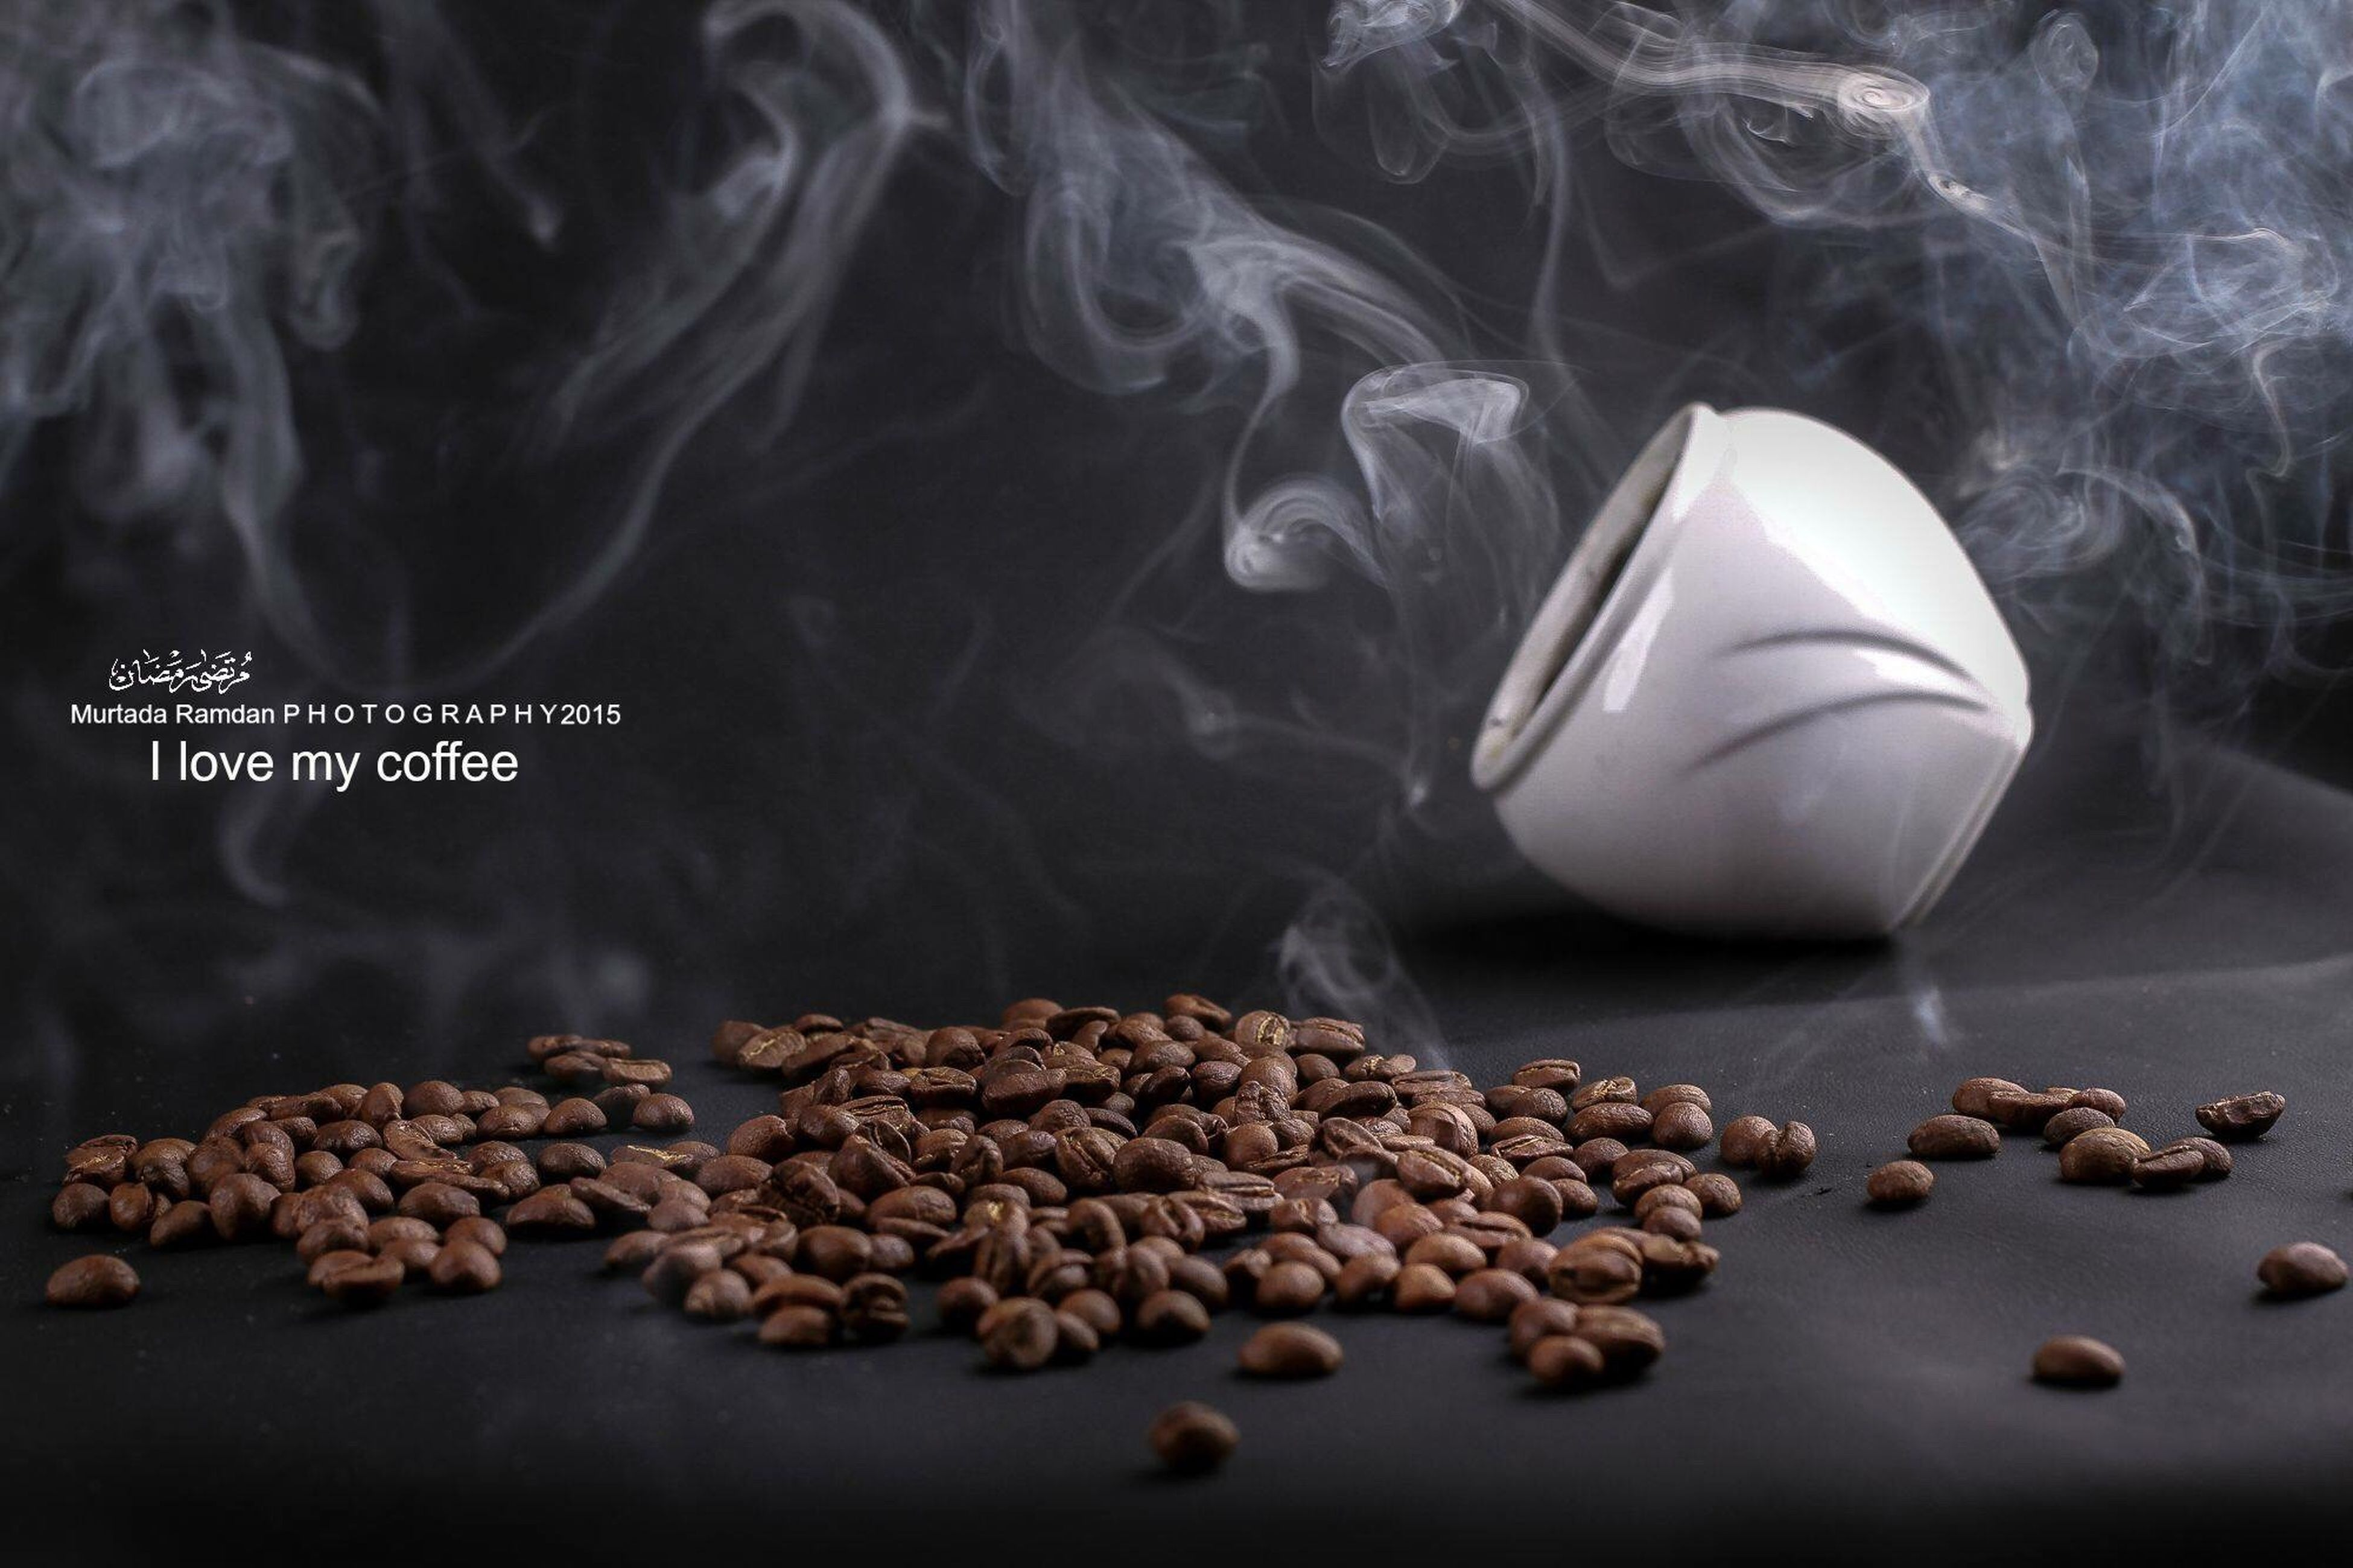 food and drink, still life, smoke - physical structure, indoors, no people, text, food, close-up, freshness, blackboard, day